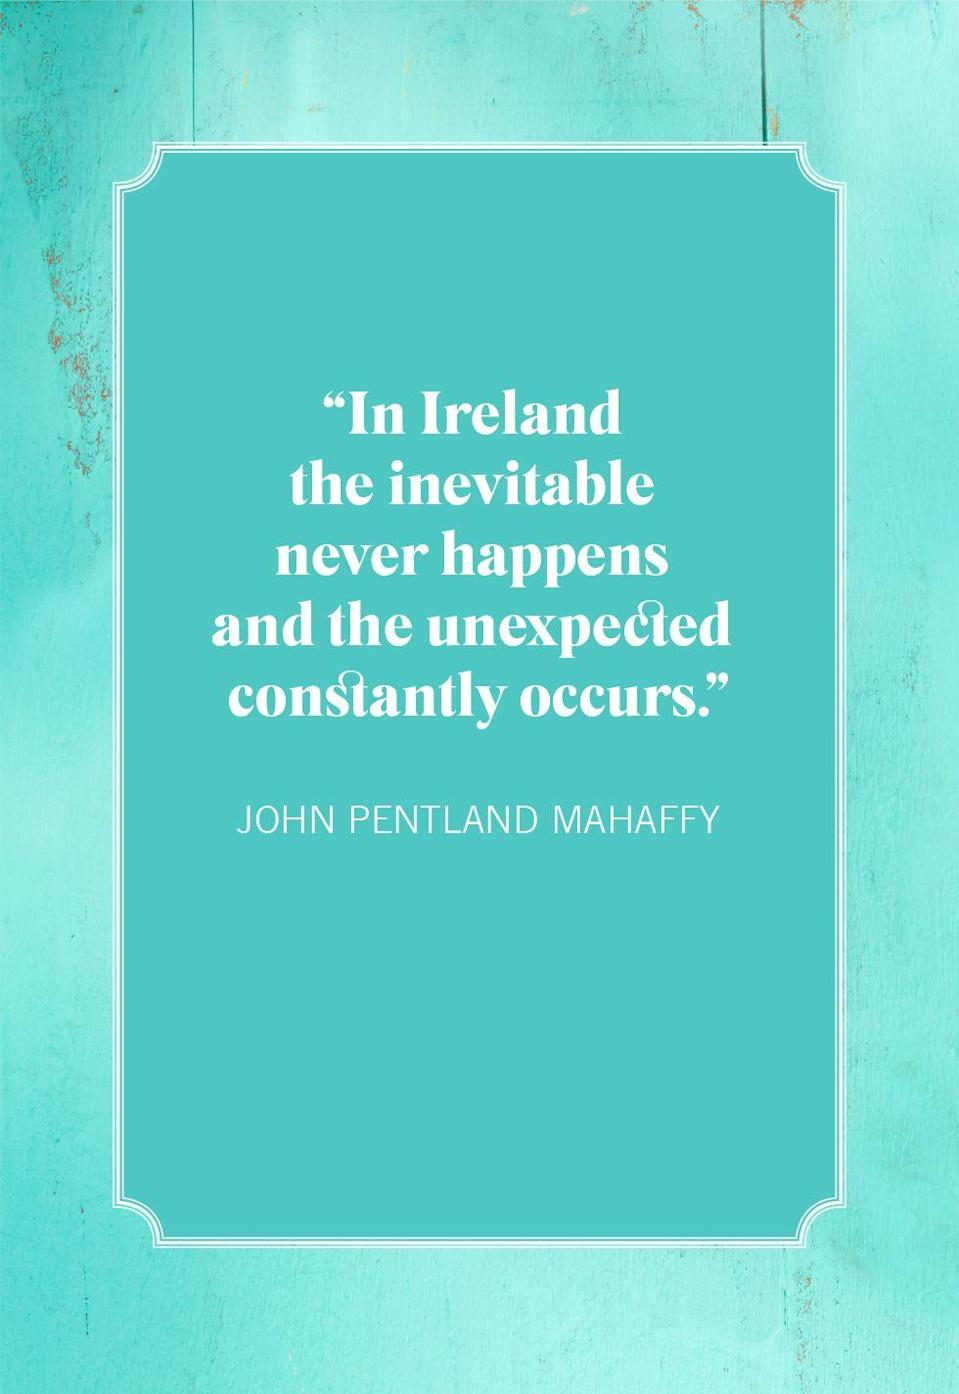 "<p>""In Ireland the inevitable never happens and the unexpected constantly occurs.""</p>"